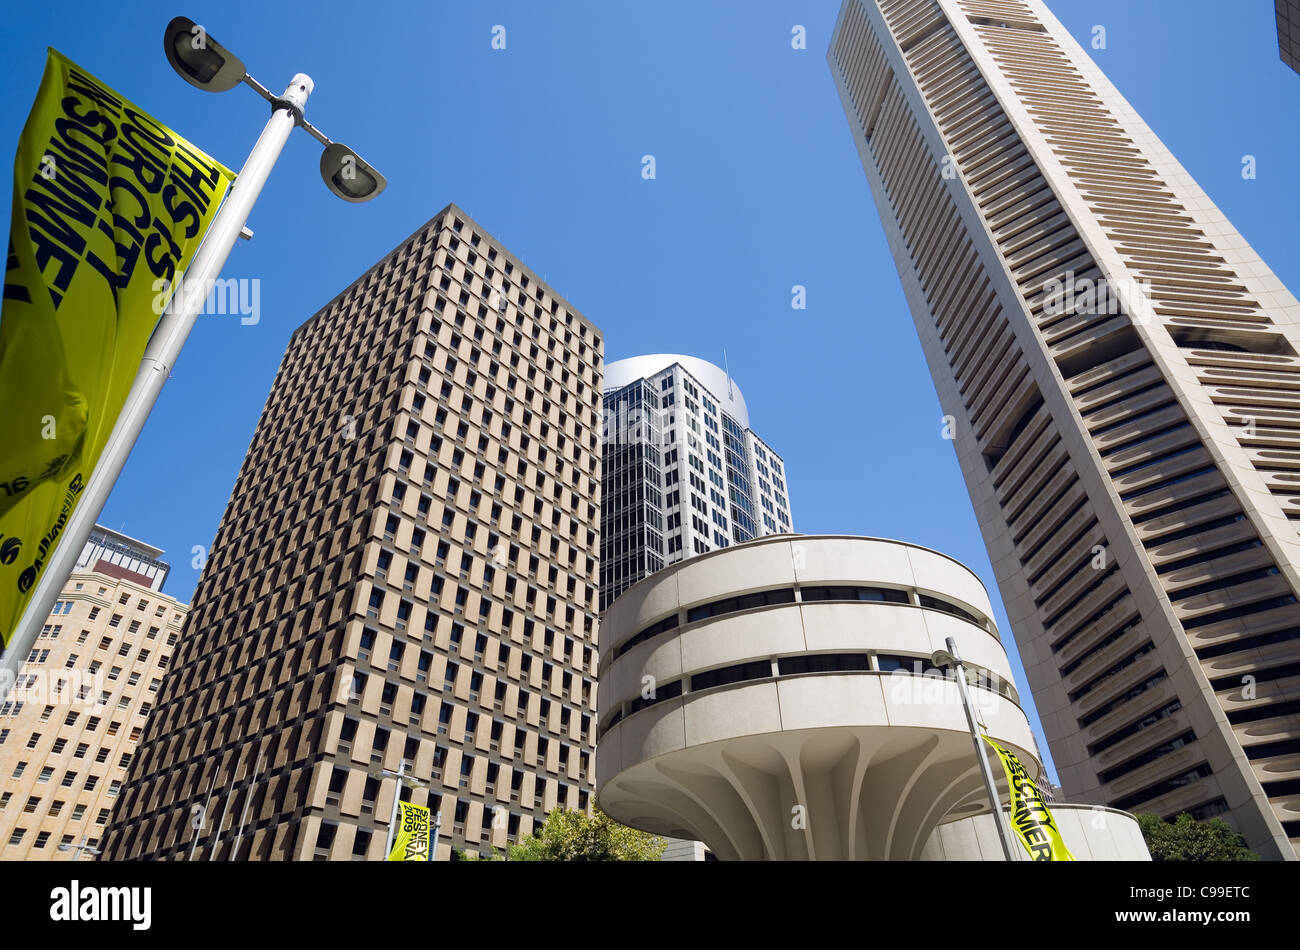 Modern architecture of Sydney's central business district including the MLC Centre. Sydney, New South Wales, - Stock Image